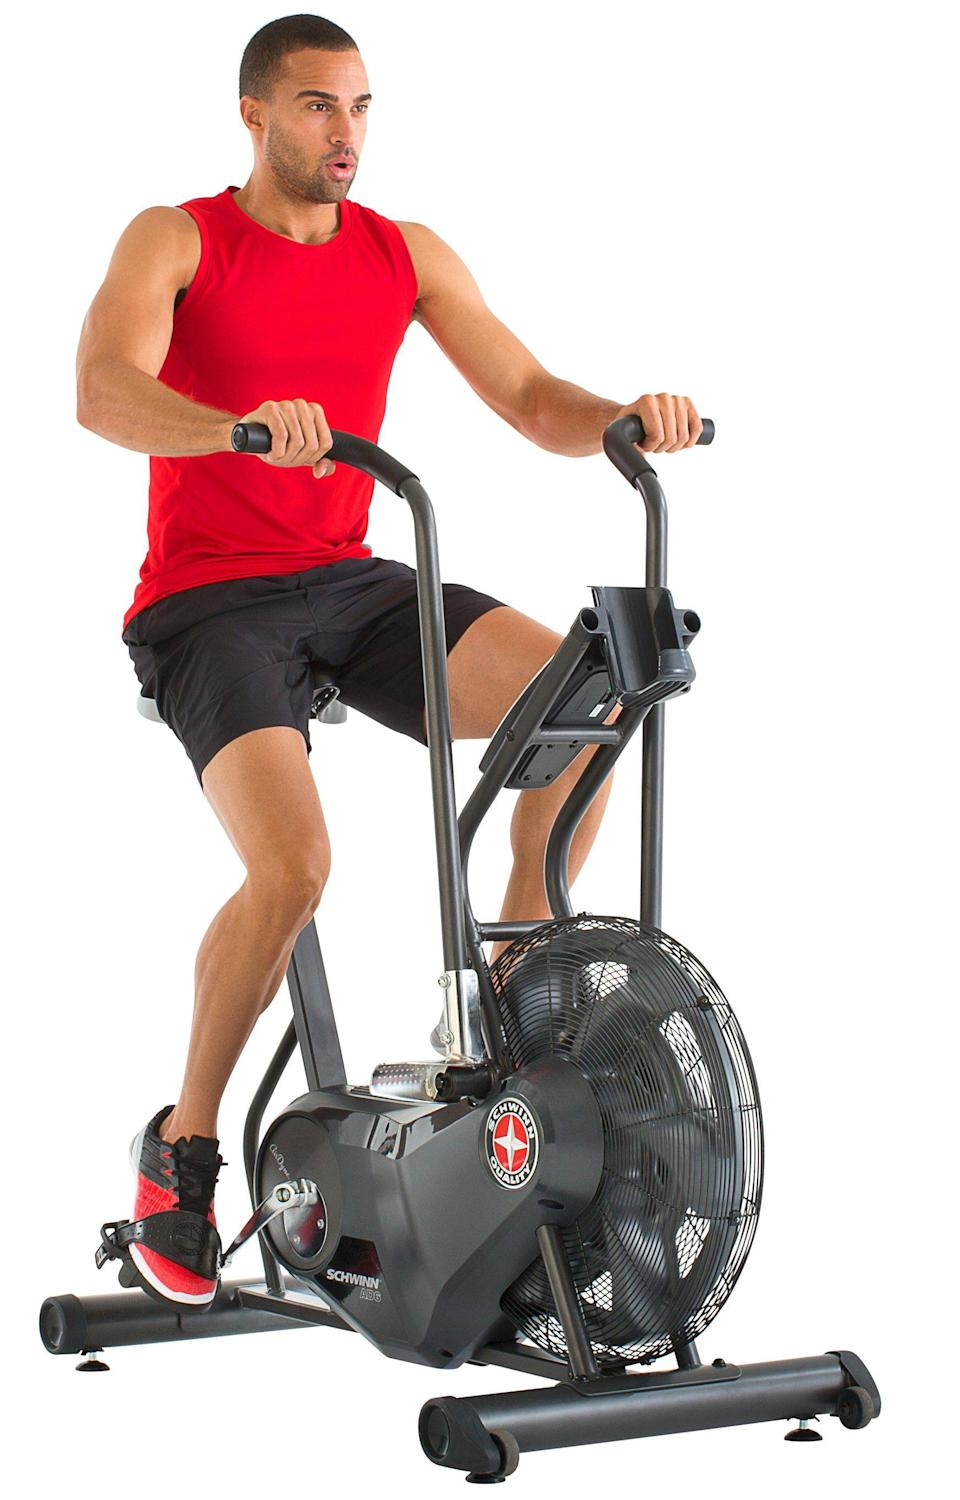 """<p><strong>Schwinn</strong></p><p>walmart.com</p><p><strong>$874.99</strong></p><p><a href=""""https://go.redirectingat.com?id=74968X1596630&url=https%3A%2F%2Fwww.walmart.com%2Fip%2F21961840%3Fselected%3Dtrue&sref=https%3A%2F%2Fwww.womenshealthmag.com%2Ffitness%2Fg37679339%2Fwalmart-indoor-exercise-bike-sale%2F"""" rel=""""nofollow noopener"""" target=""""_blank"""" data-ylk=""""slk:Shop Now"""" class=""""link rapid-noclick-resp"""">Shop Now</a></p><p>Want to add an indoor bike to your setup, but don't want to swallow up precious square footage? Decked out with a cushioned seat for a comfortable ride, Schwinn's upright bike ticks of all of the boxes, and then some. Plus, the heart rate monitor is an easy way to track your progress and growth.</p>"""